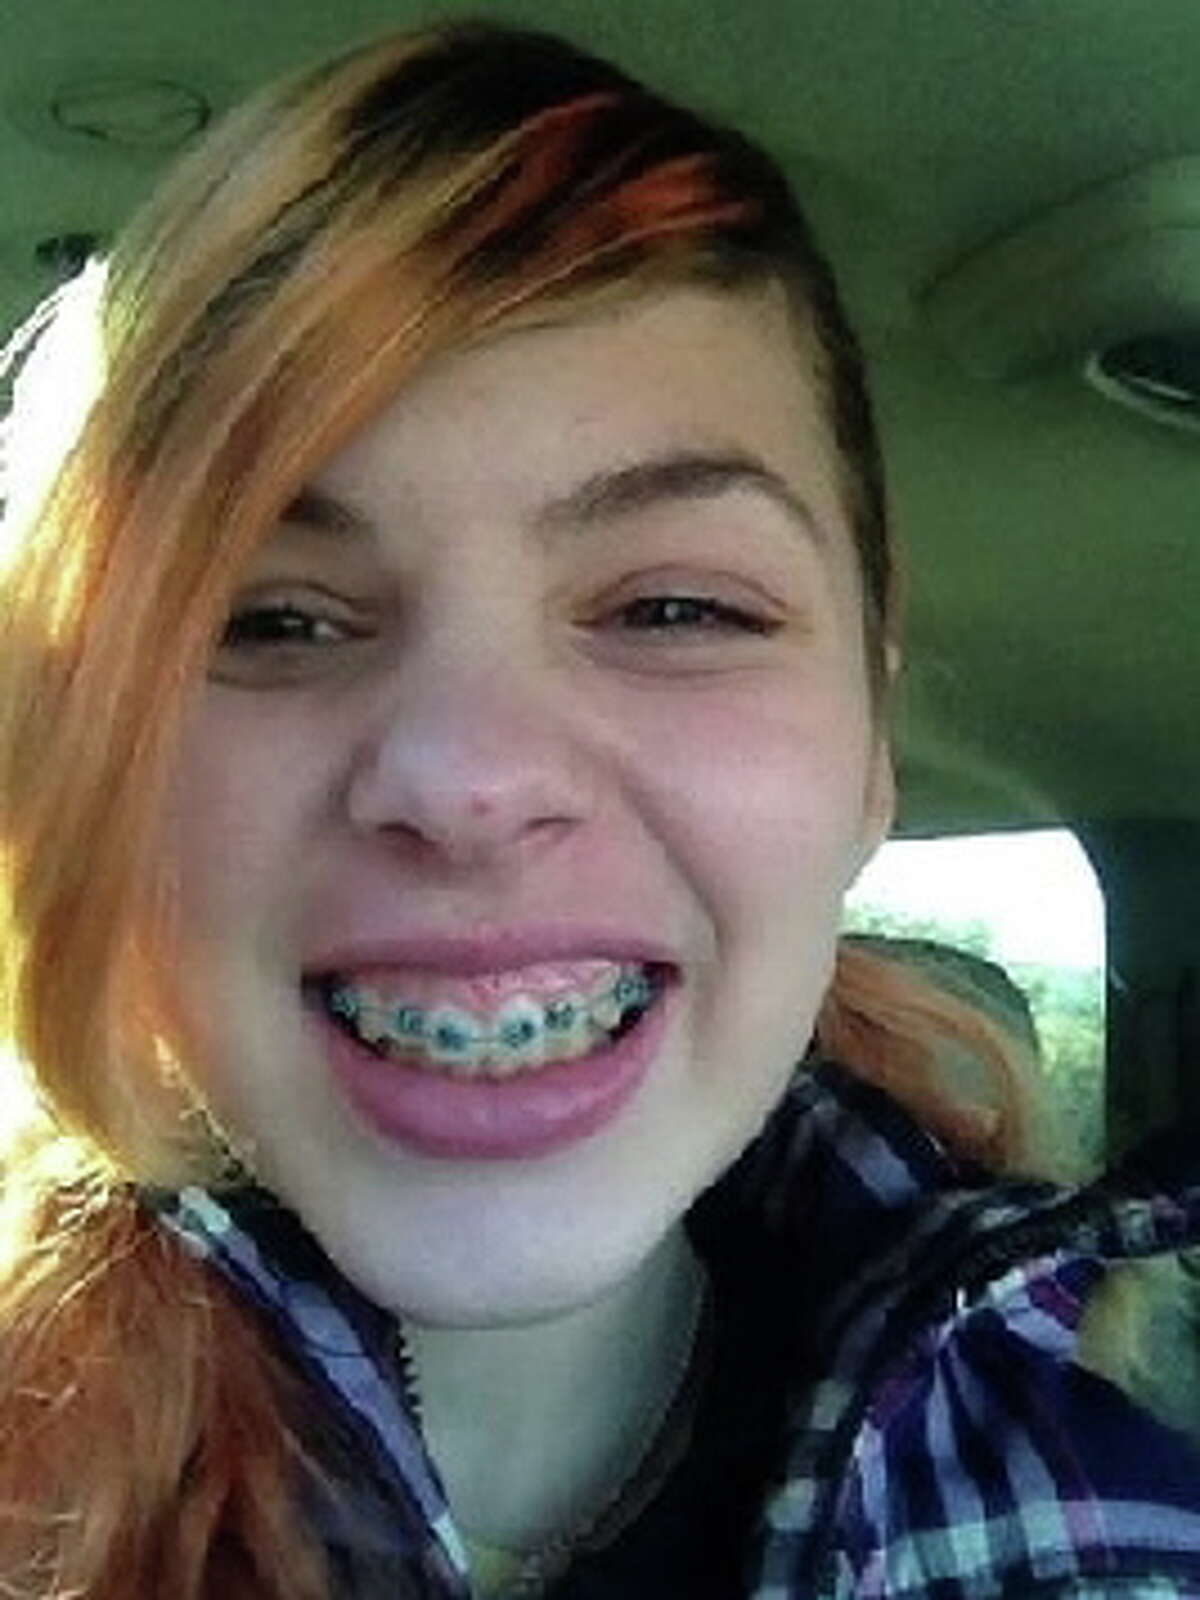 Rose Stover, 13, was reported as an endangered runaway by Winchester police.